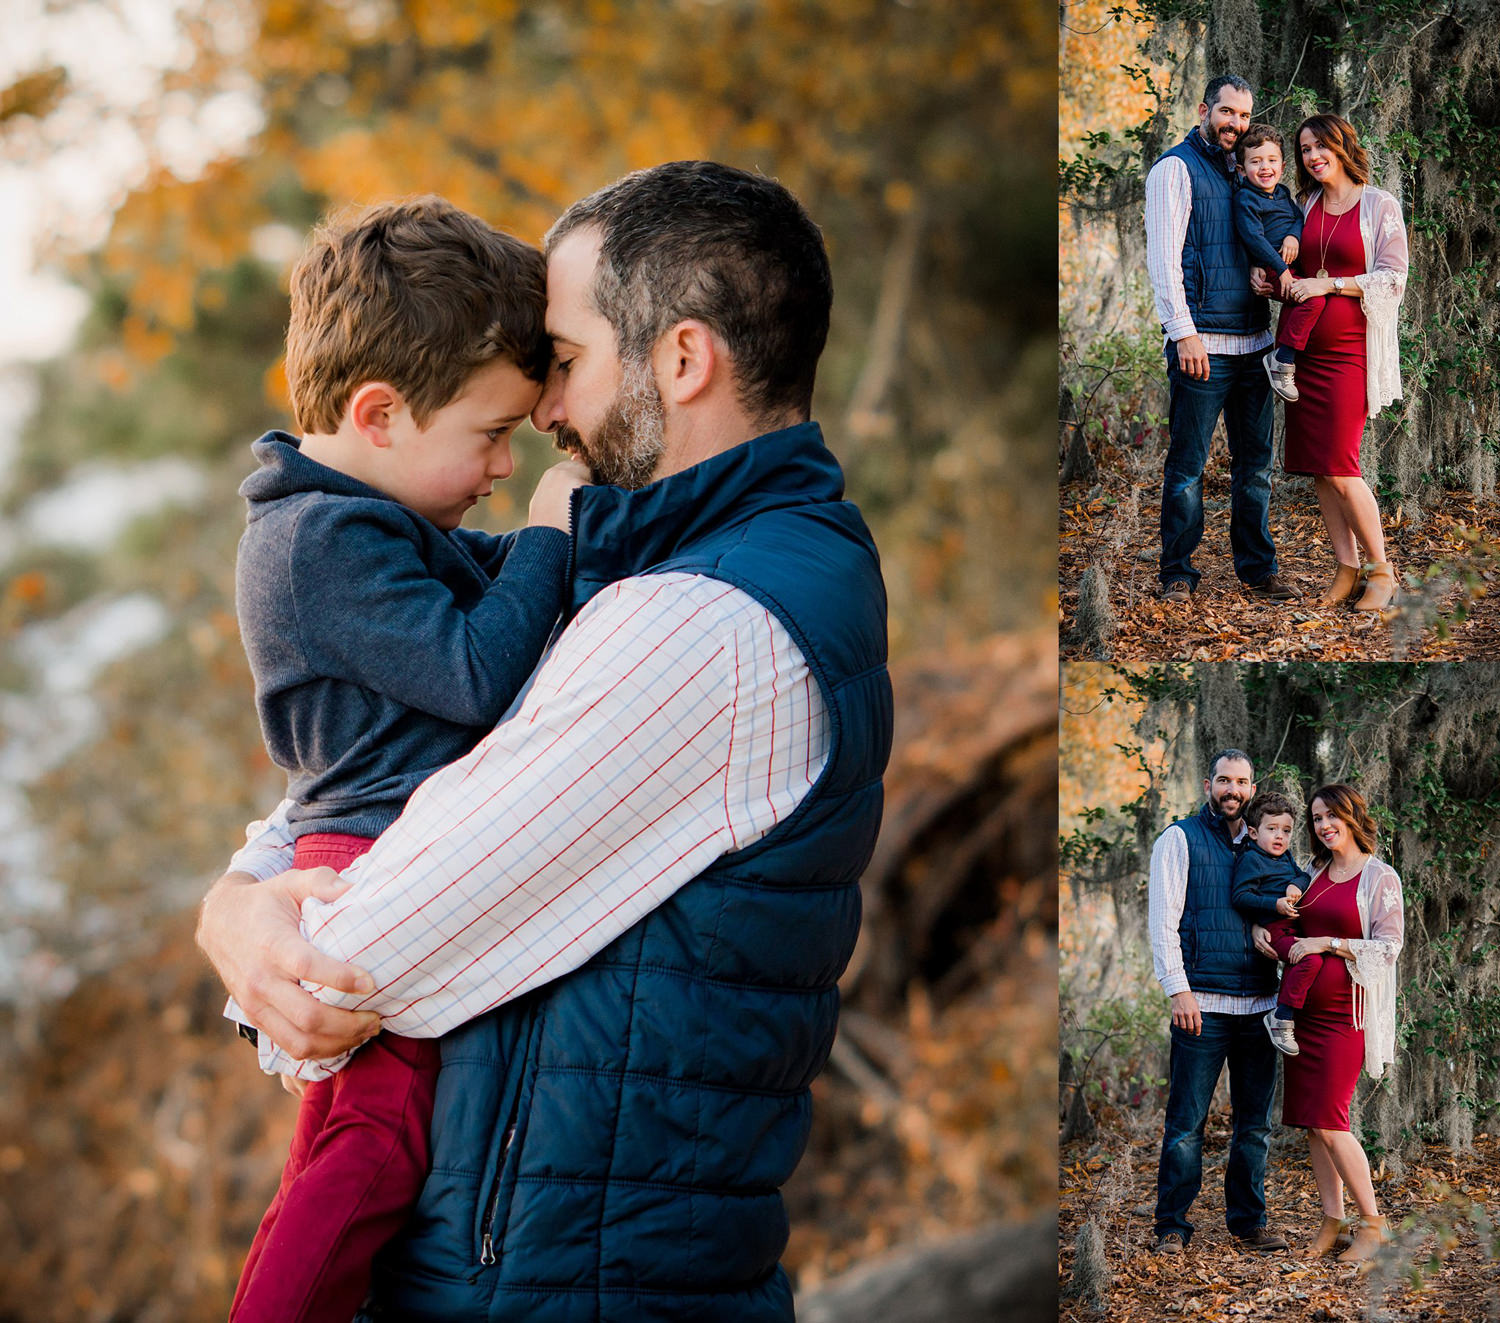 virginia-beach-family-maternity-session-at-first-landing-state-park-gorgeous-fall-leaves-melissa-bliss-photography.jpg